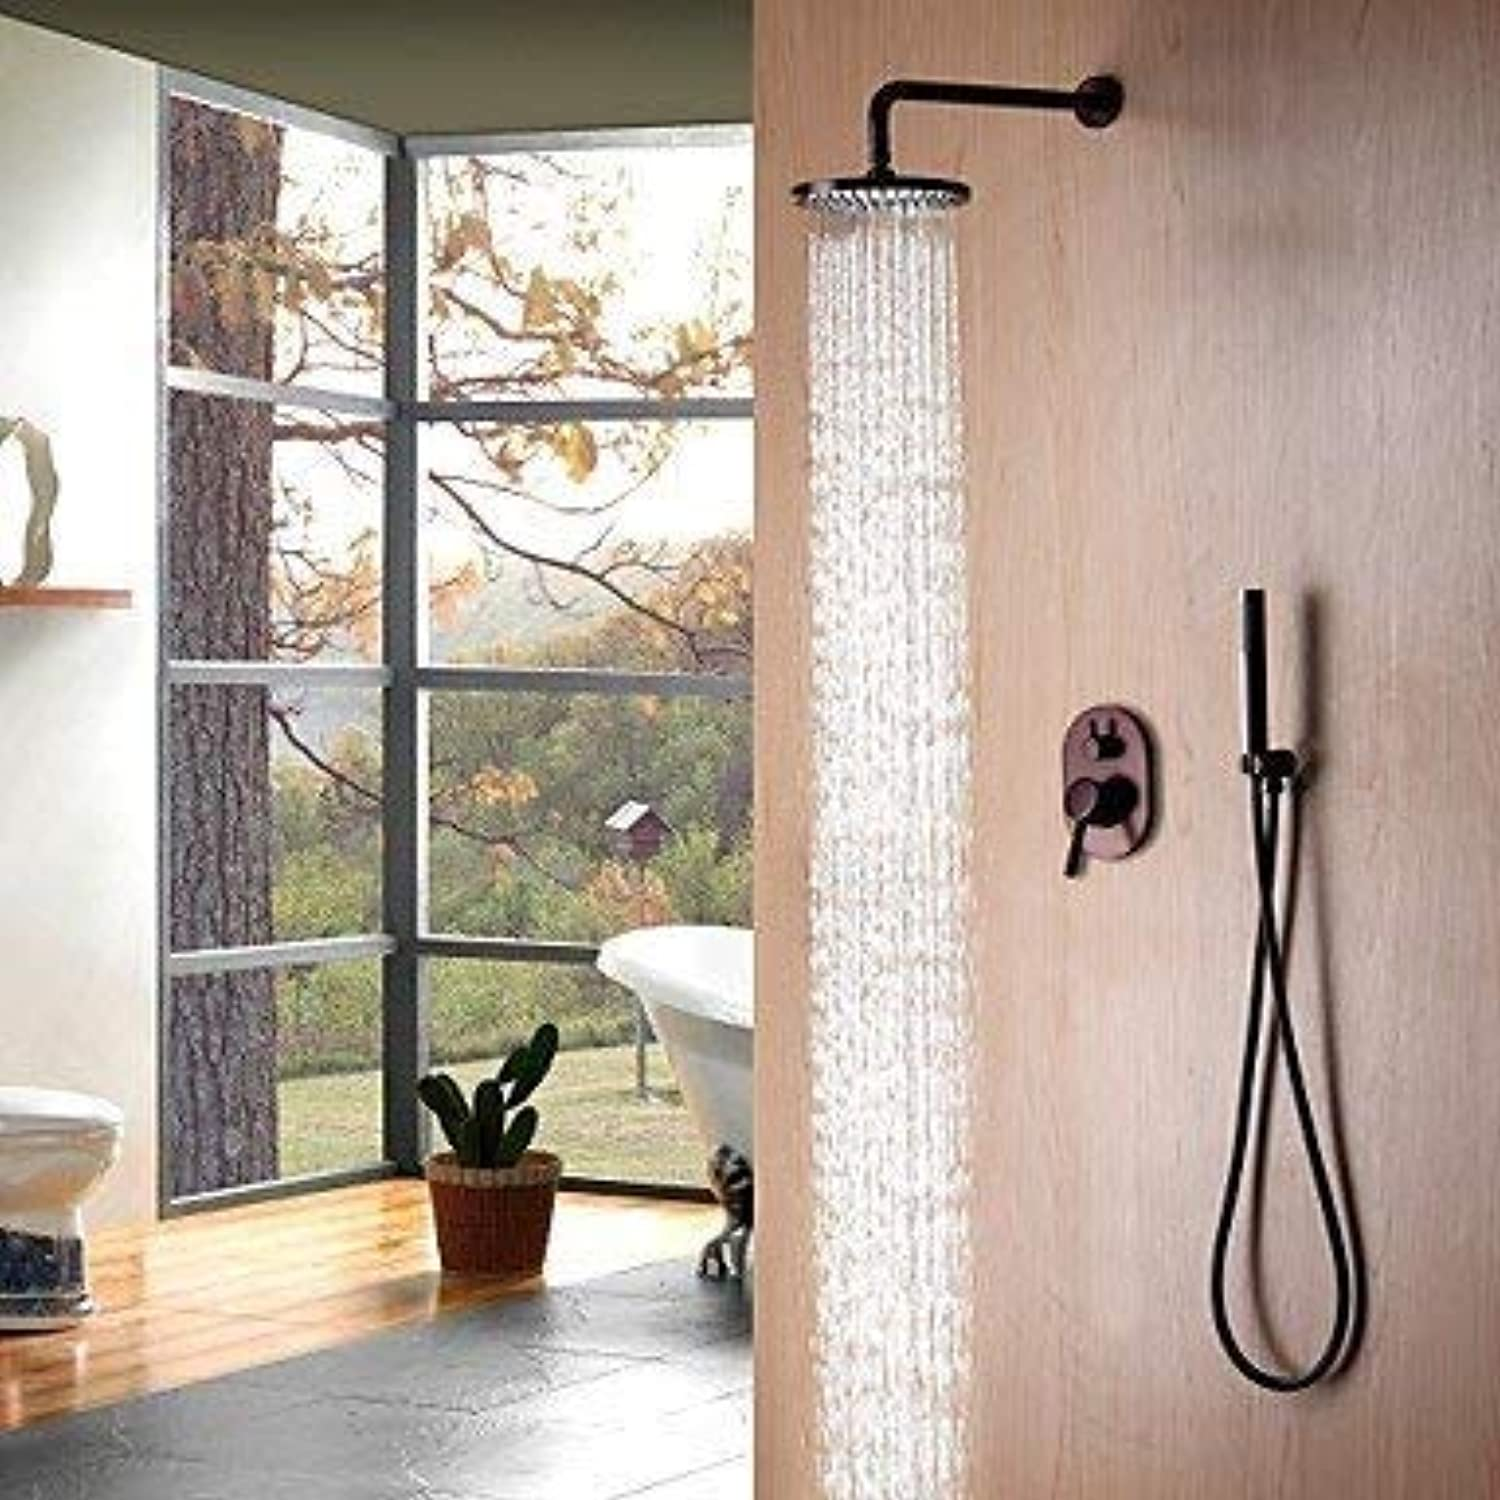 Shower Faucet - Contemporary Simple Modern Style Oil-rubbed Bronze Wall Mounted Ceramic Valve